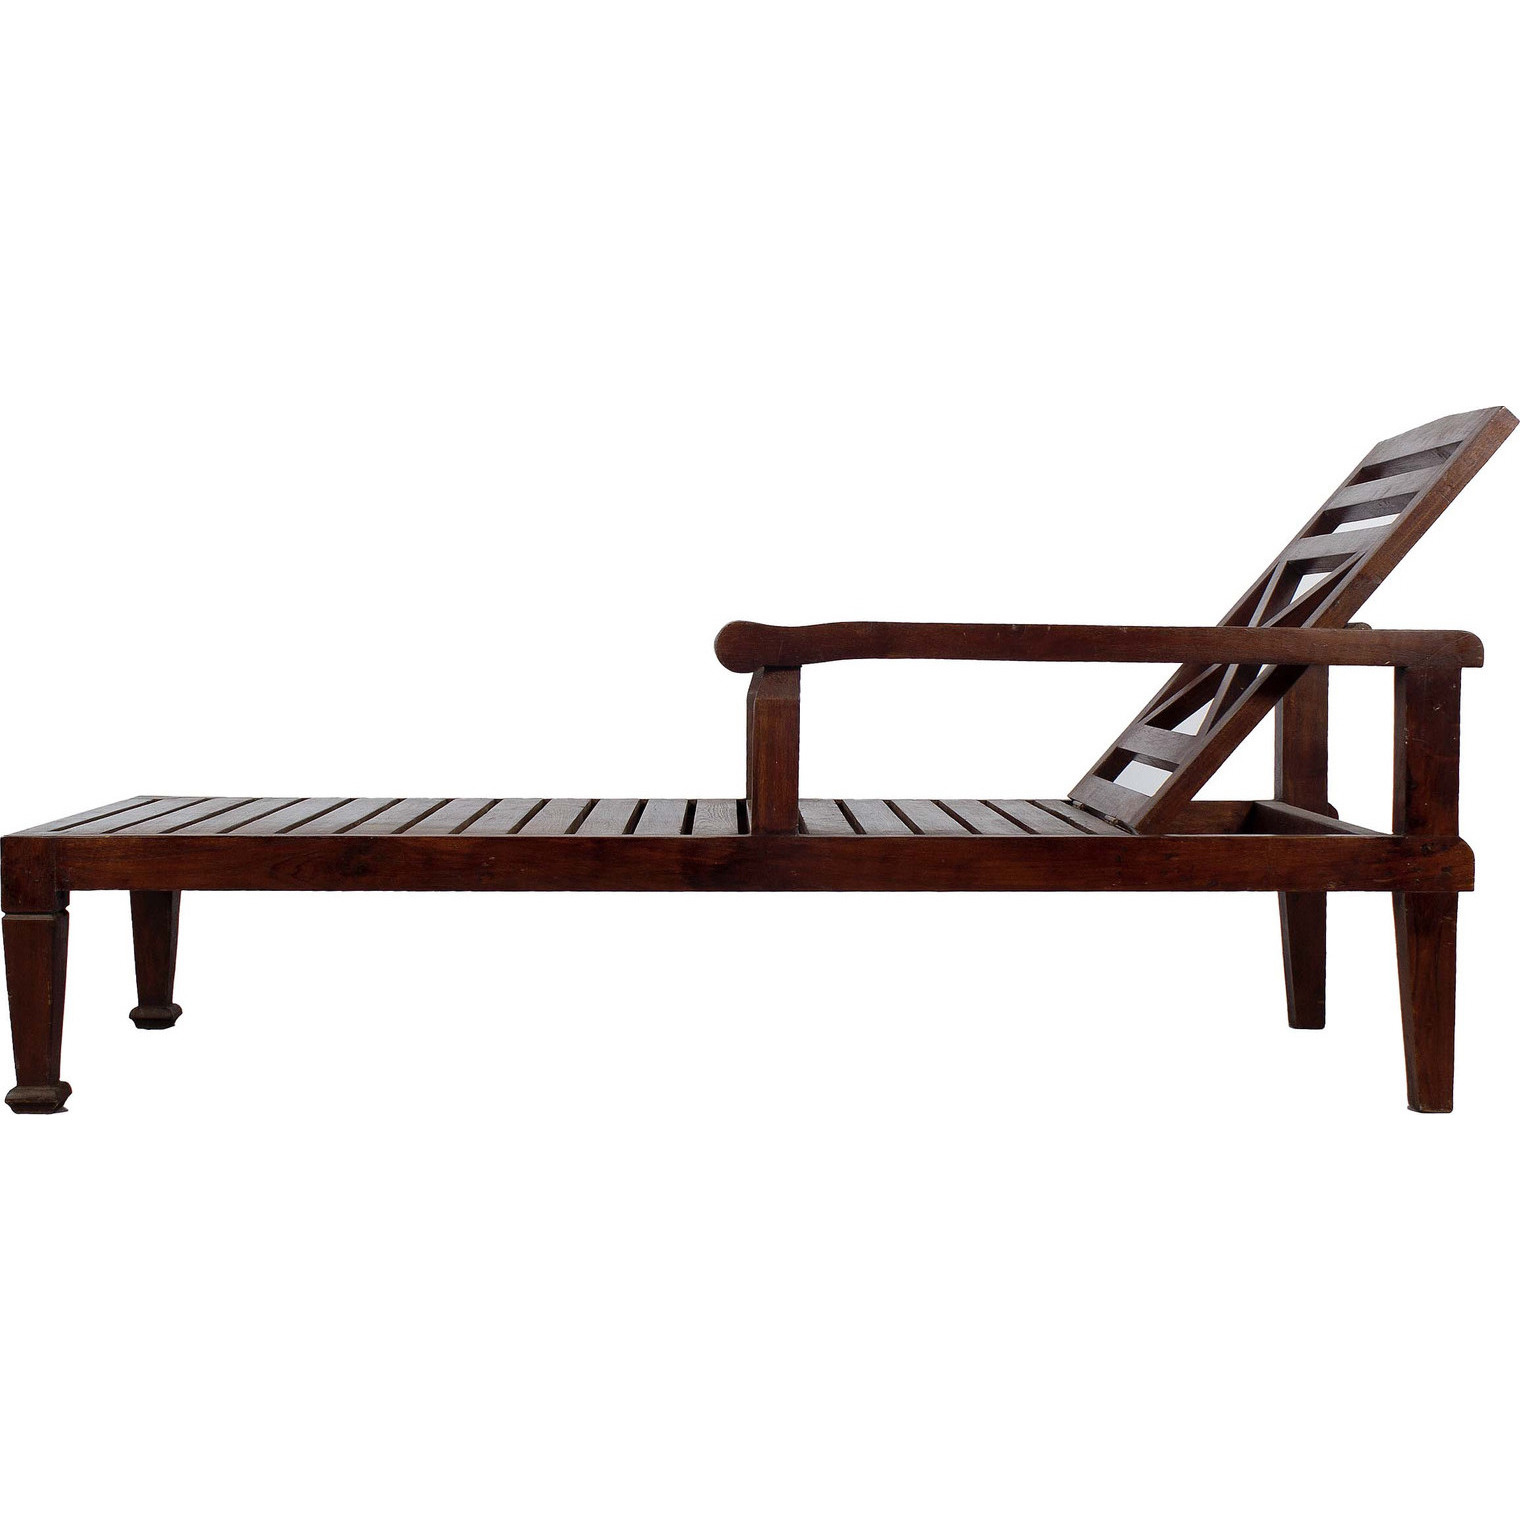 Buy online solid teak wood beach chaise lounge chairb for Beach chaise lounger